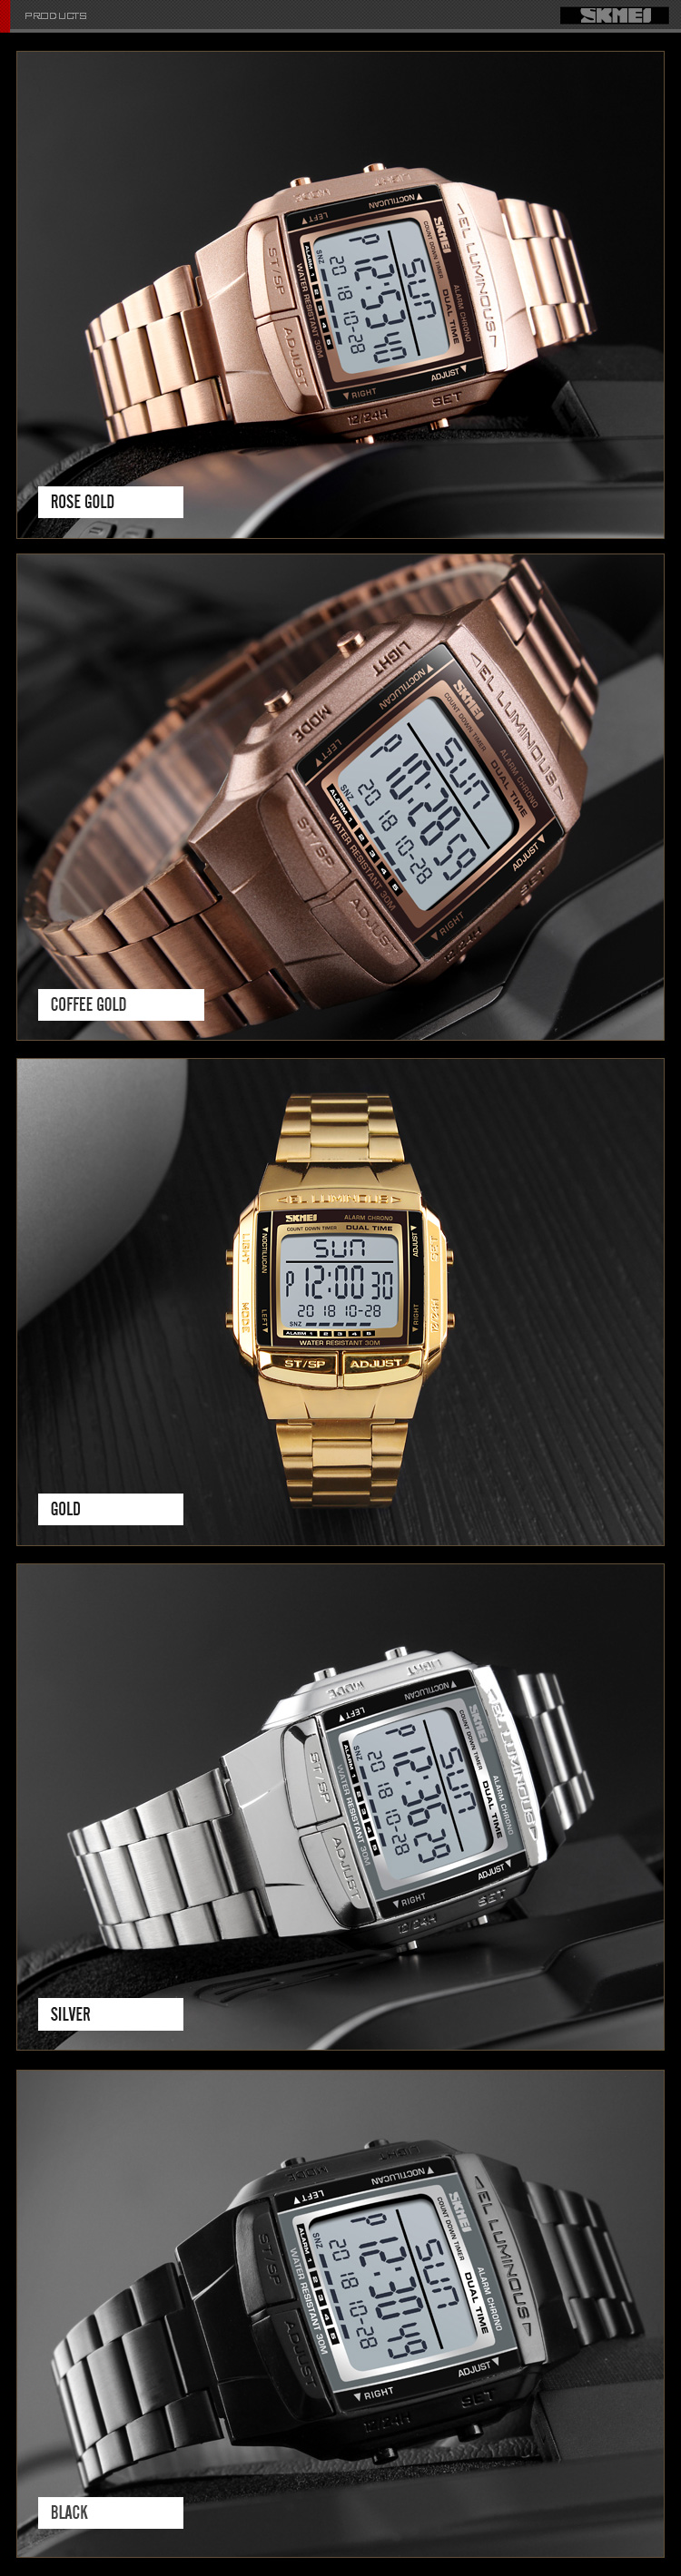 DAPS - RETRO DIGITAL WRIST WATCH FOR MEN